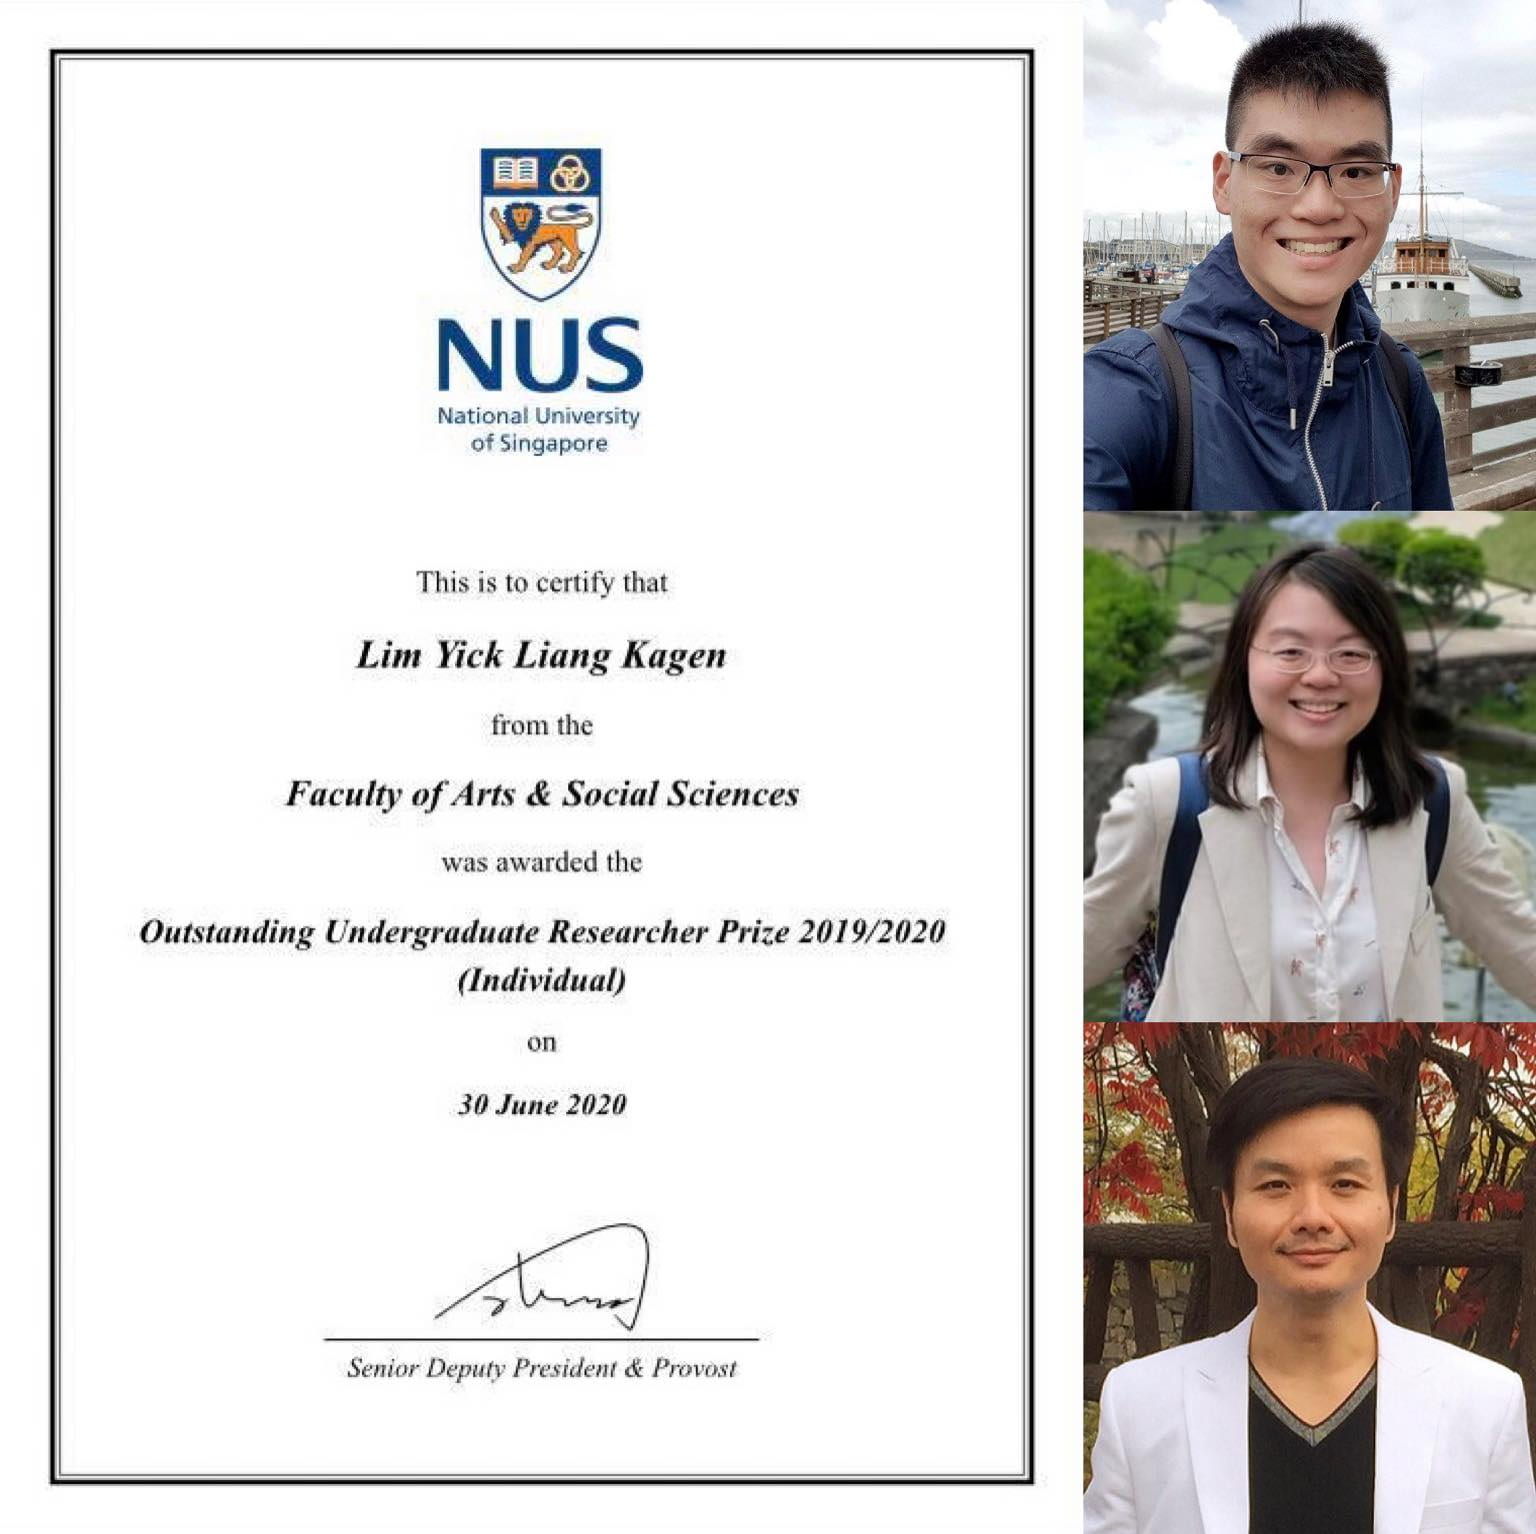 FASS Psychology Student Kagen Lim from CogEduLab@NUS Wins 2020 University Outstanding Undergraduate Researcher Prize!